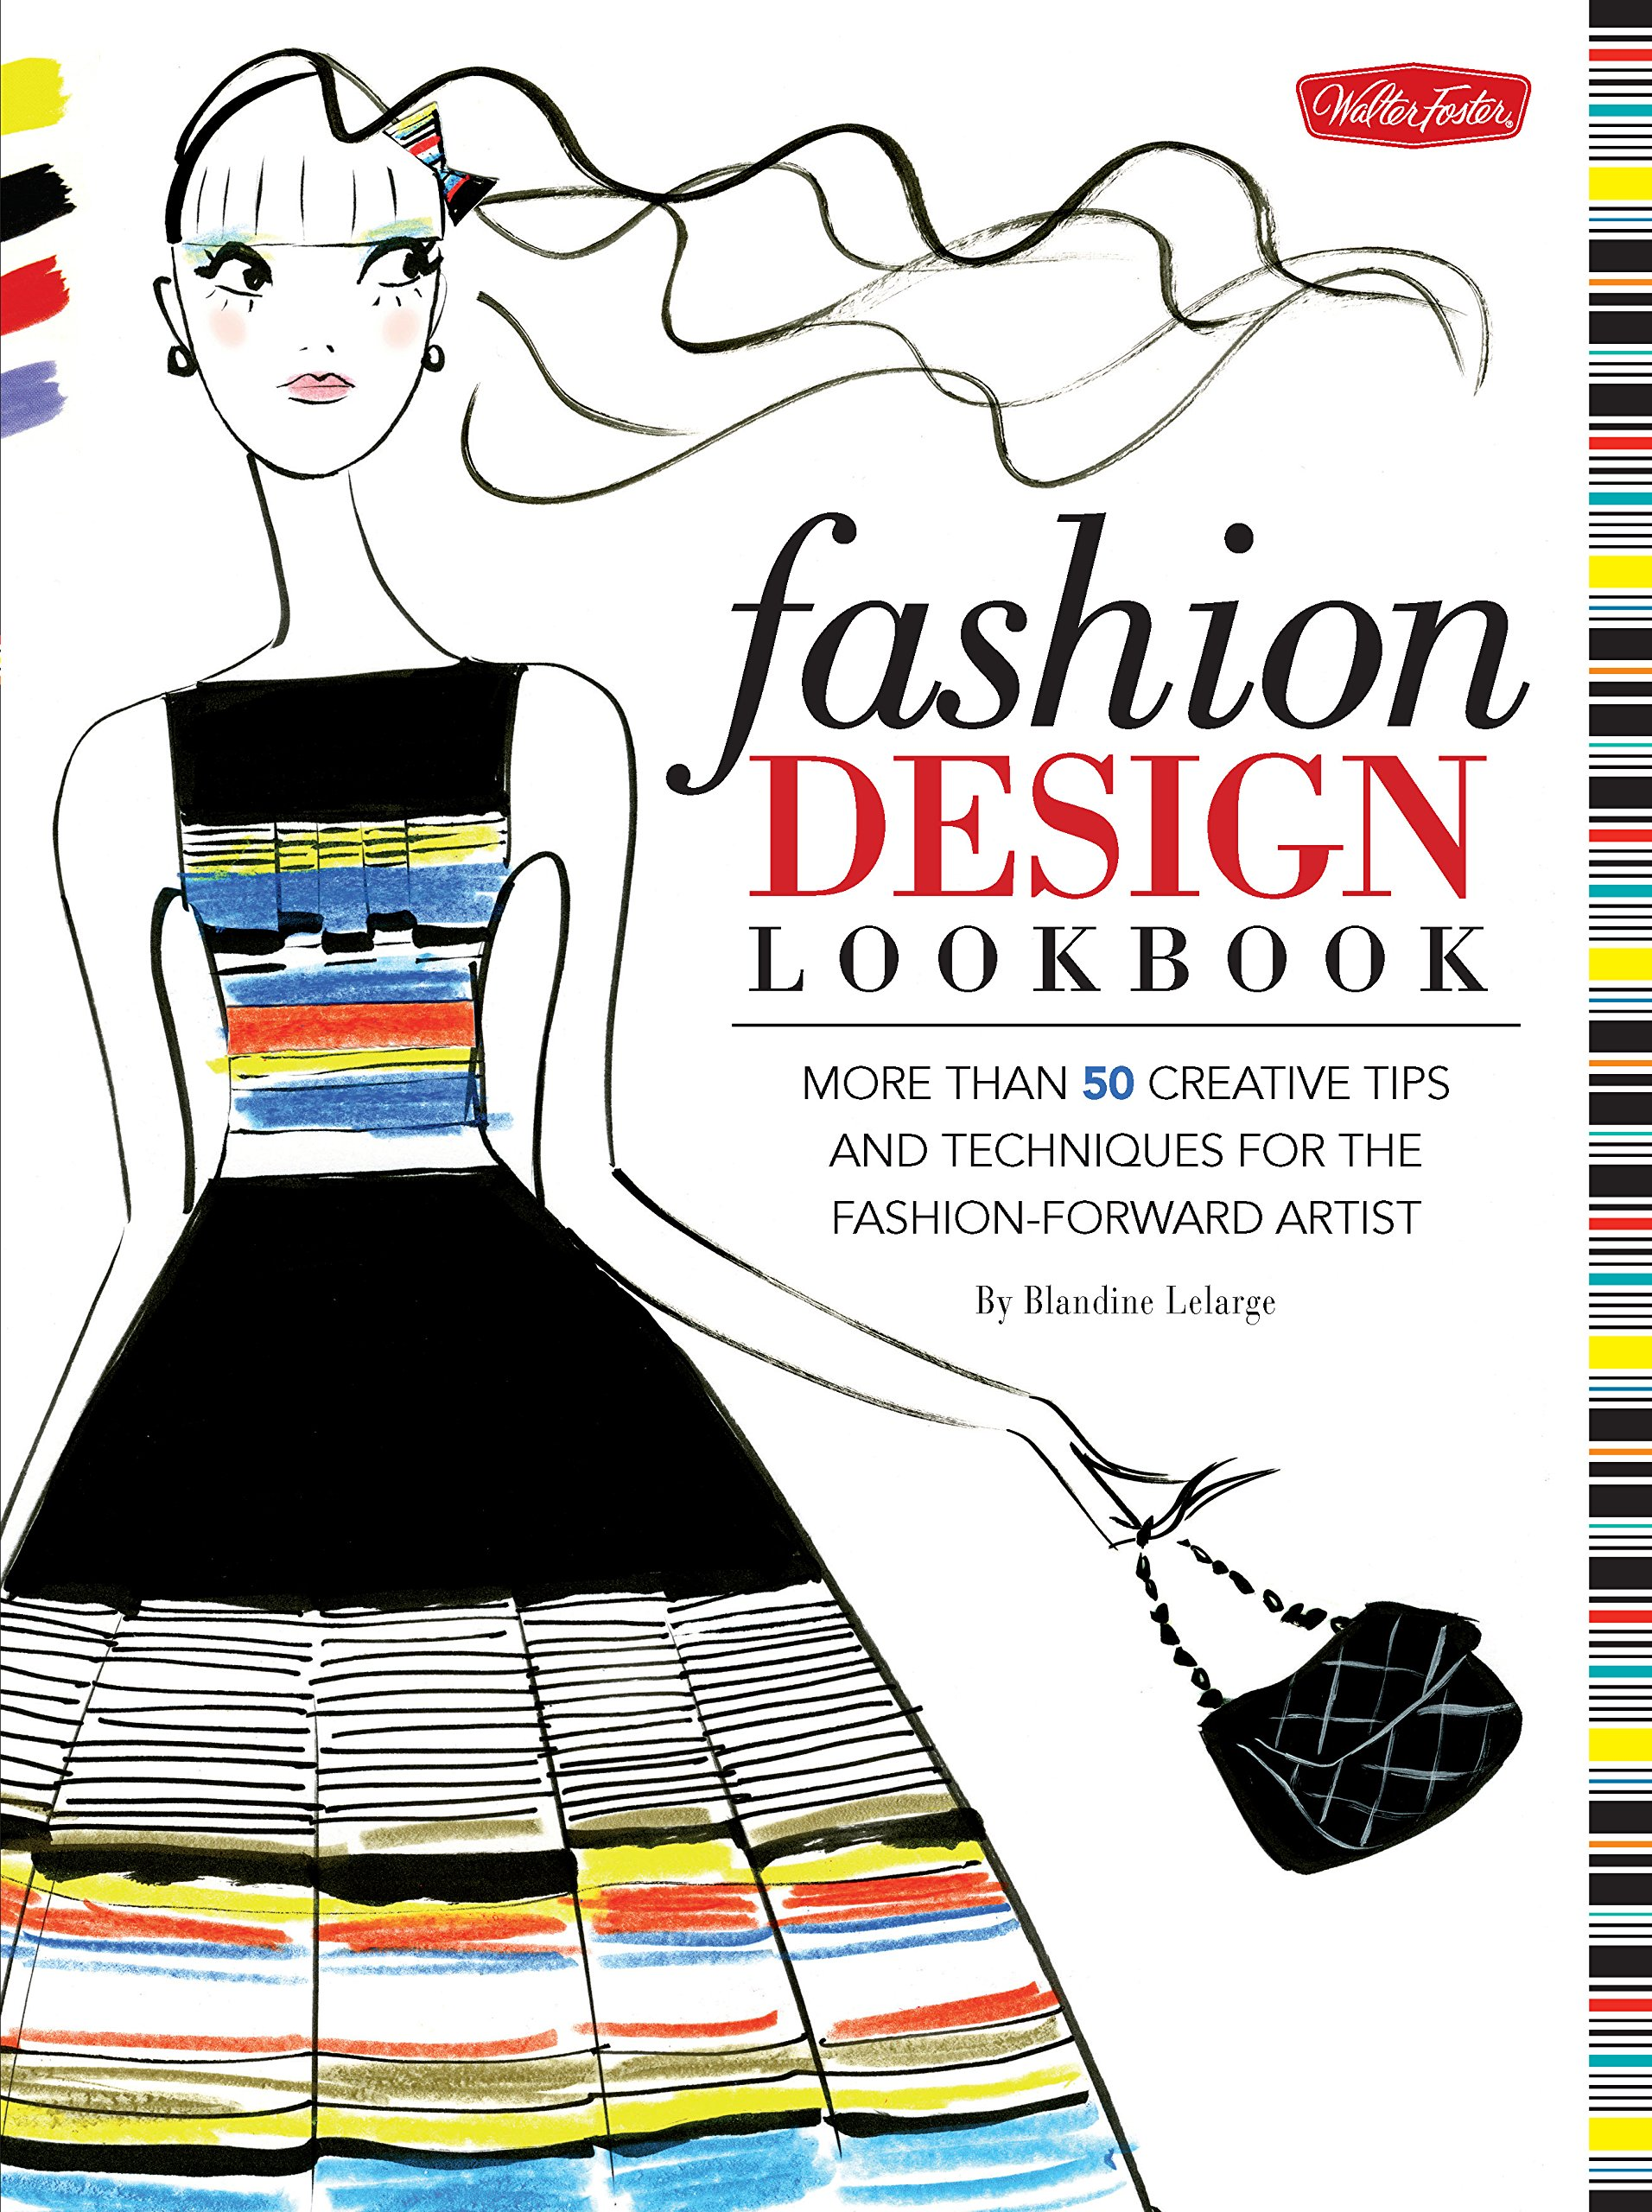 Amazon Com Fashion Design Lookbook More Than 50 Creative Tips And Techniques For The Fashion Forward Artist Walter Foster Studio 9781600584367 Lelarge Blandine Books